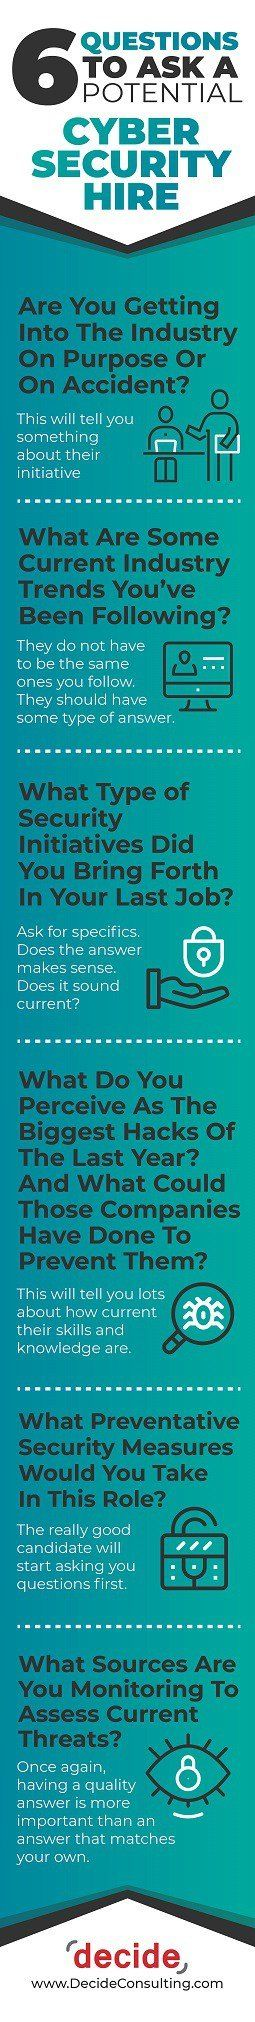 6 Questions to Ask a Potential CyberSecurity Hire